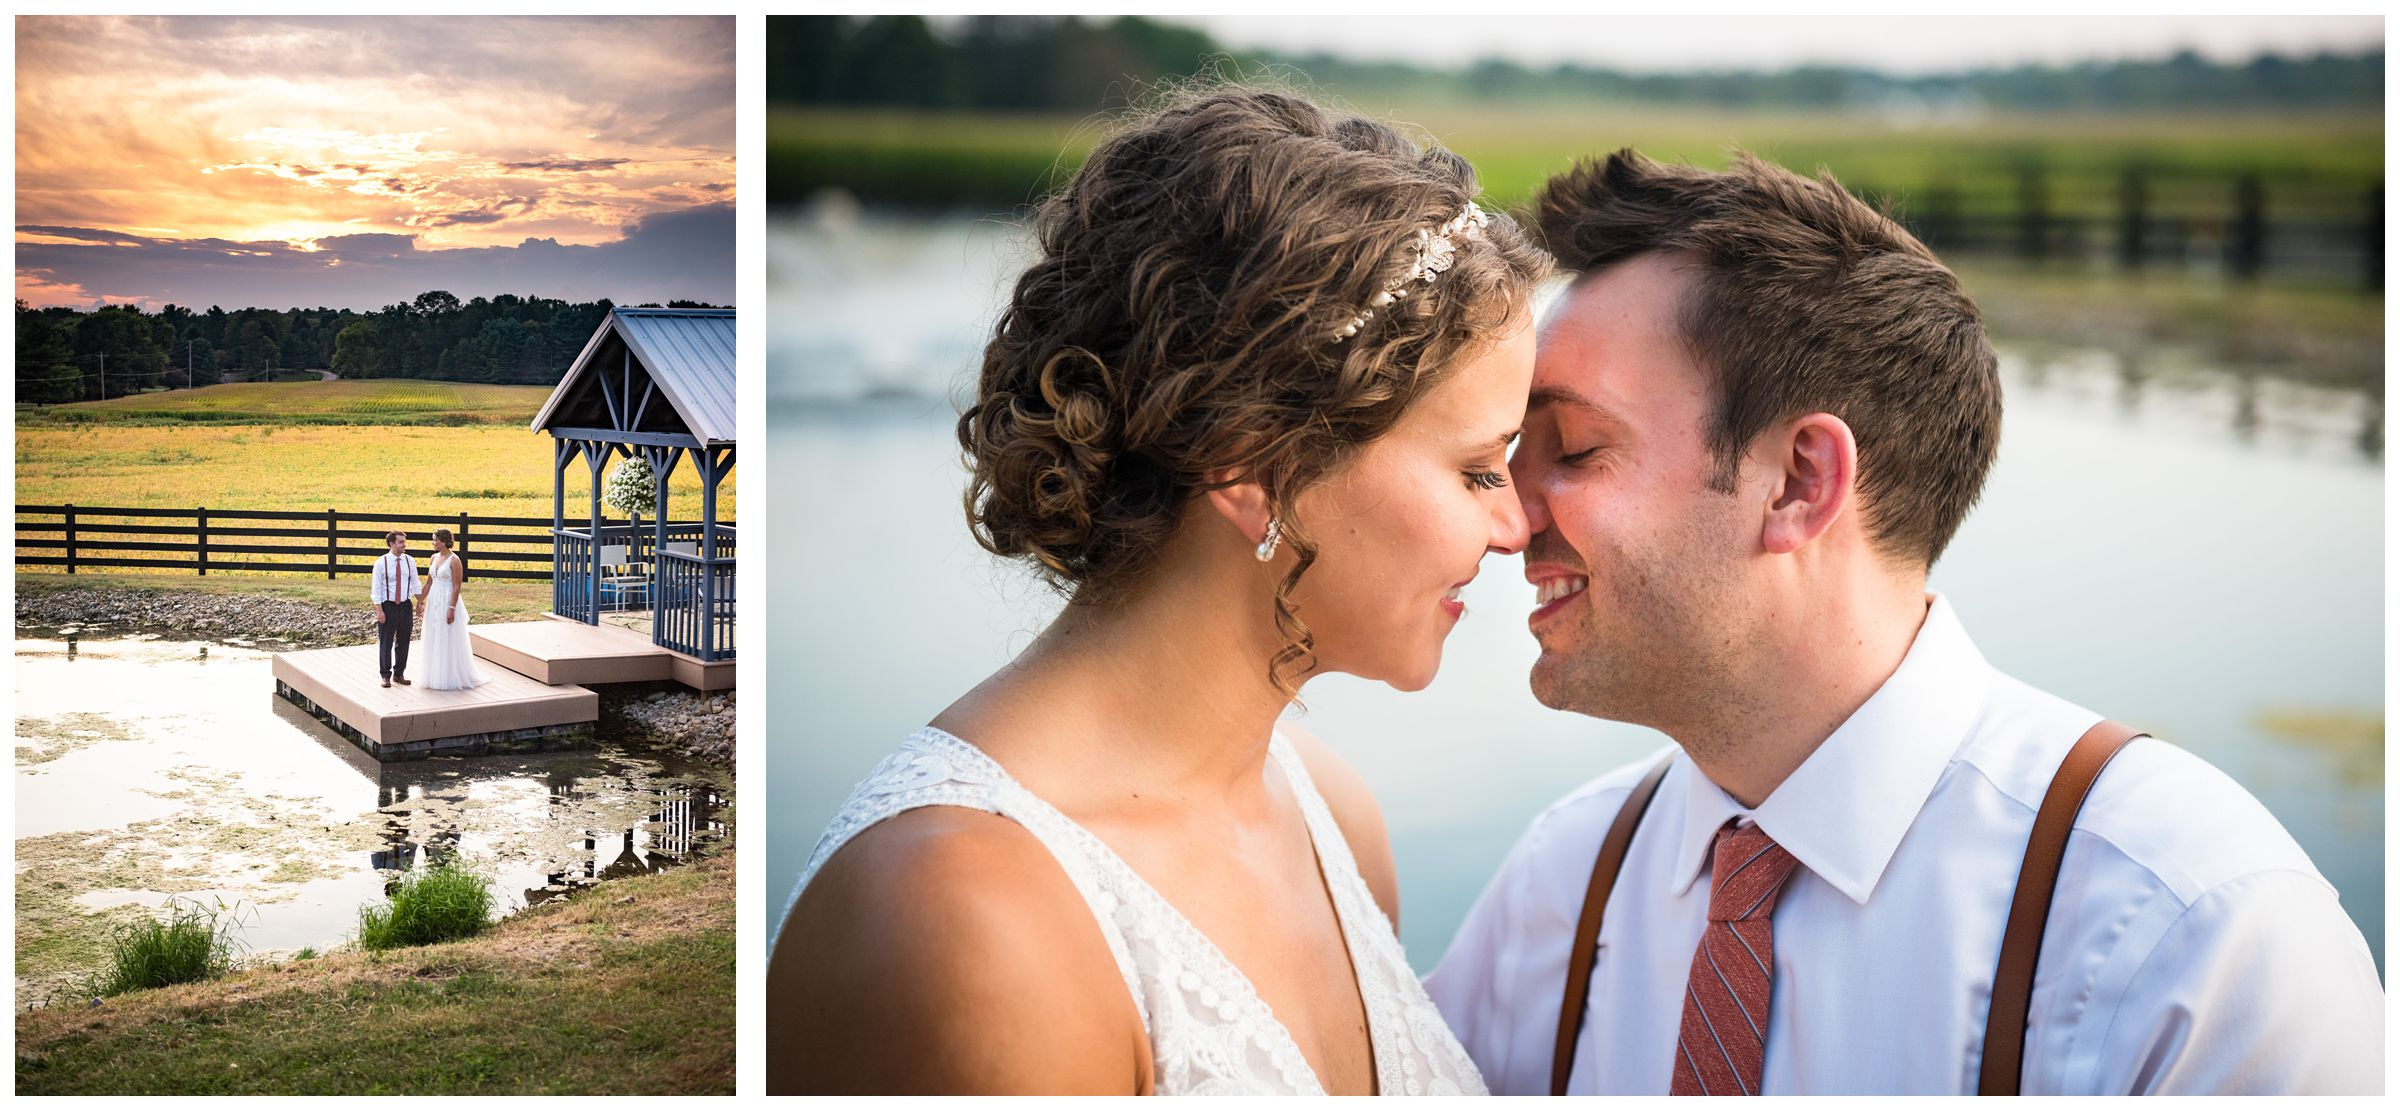 wedding portraits at sunset by pond during rustic barn wedding captured by Columbus Ohio wedding photographer